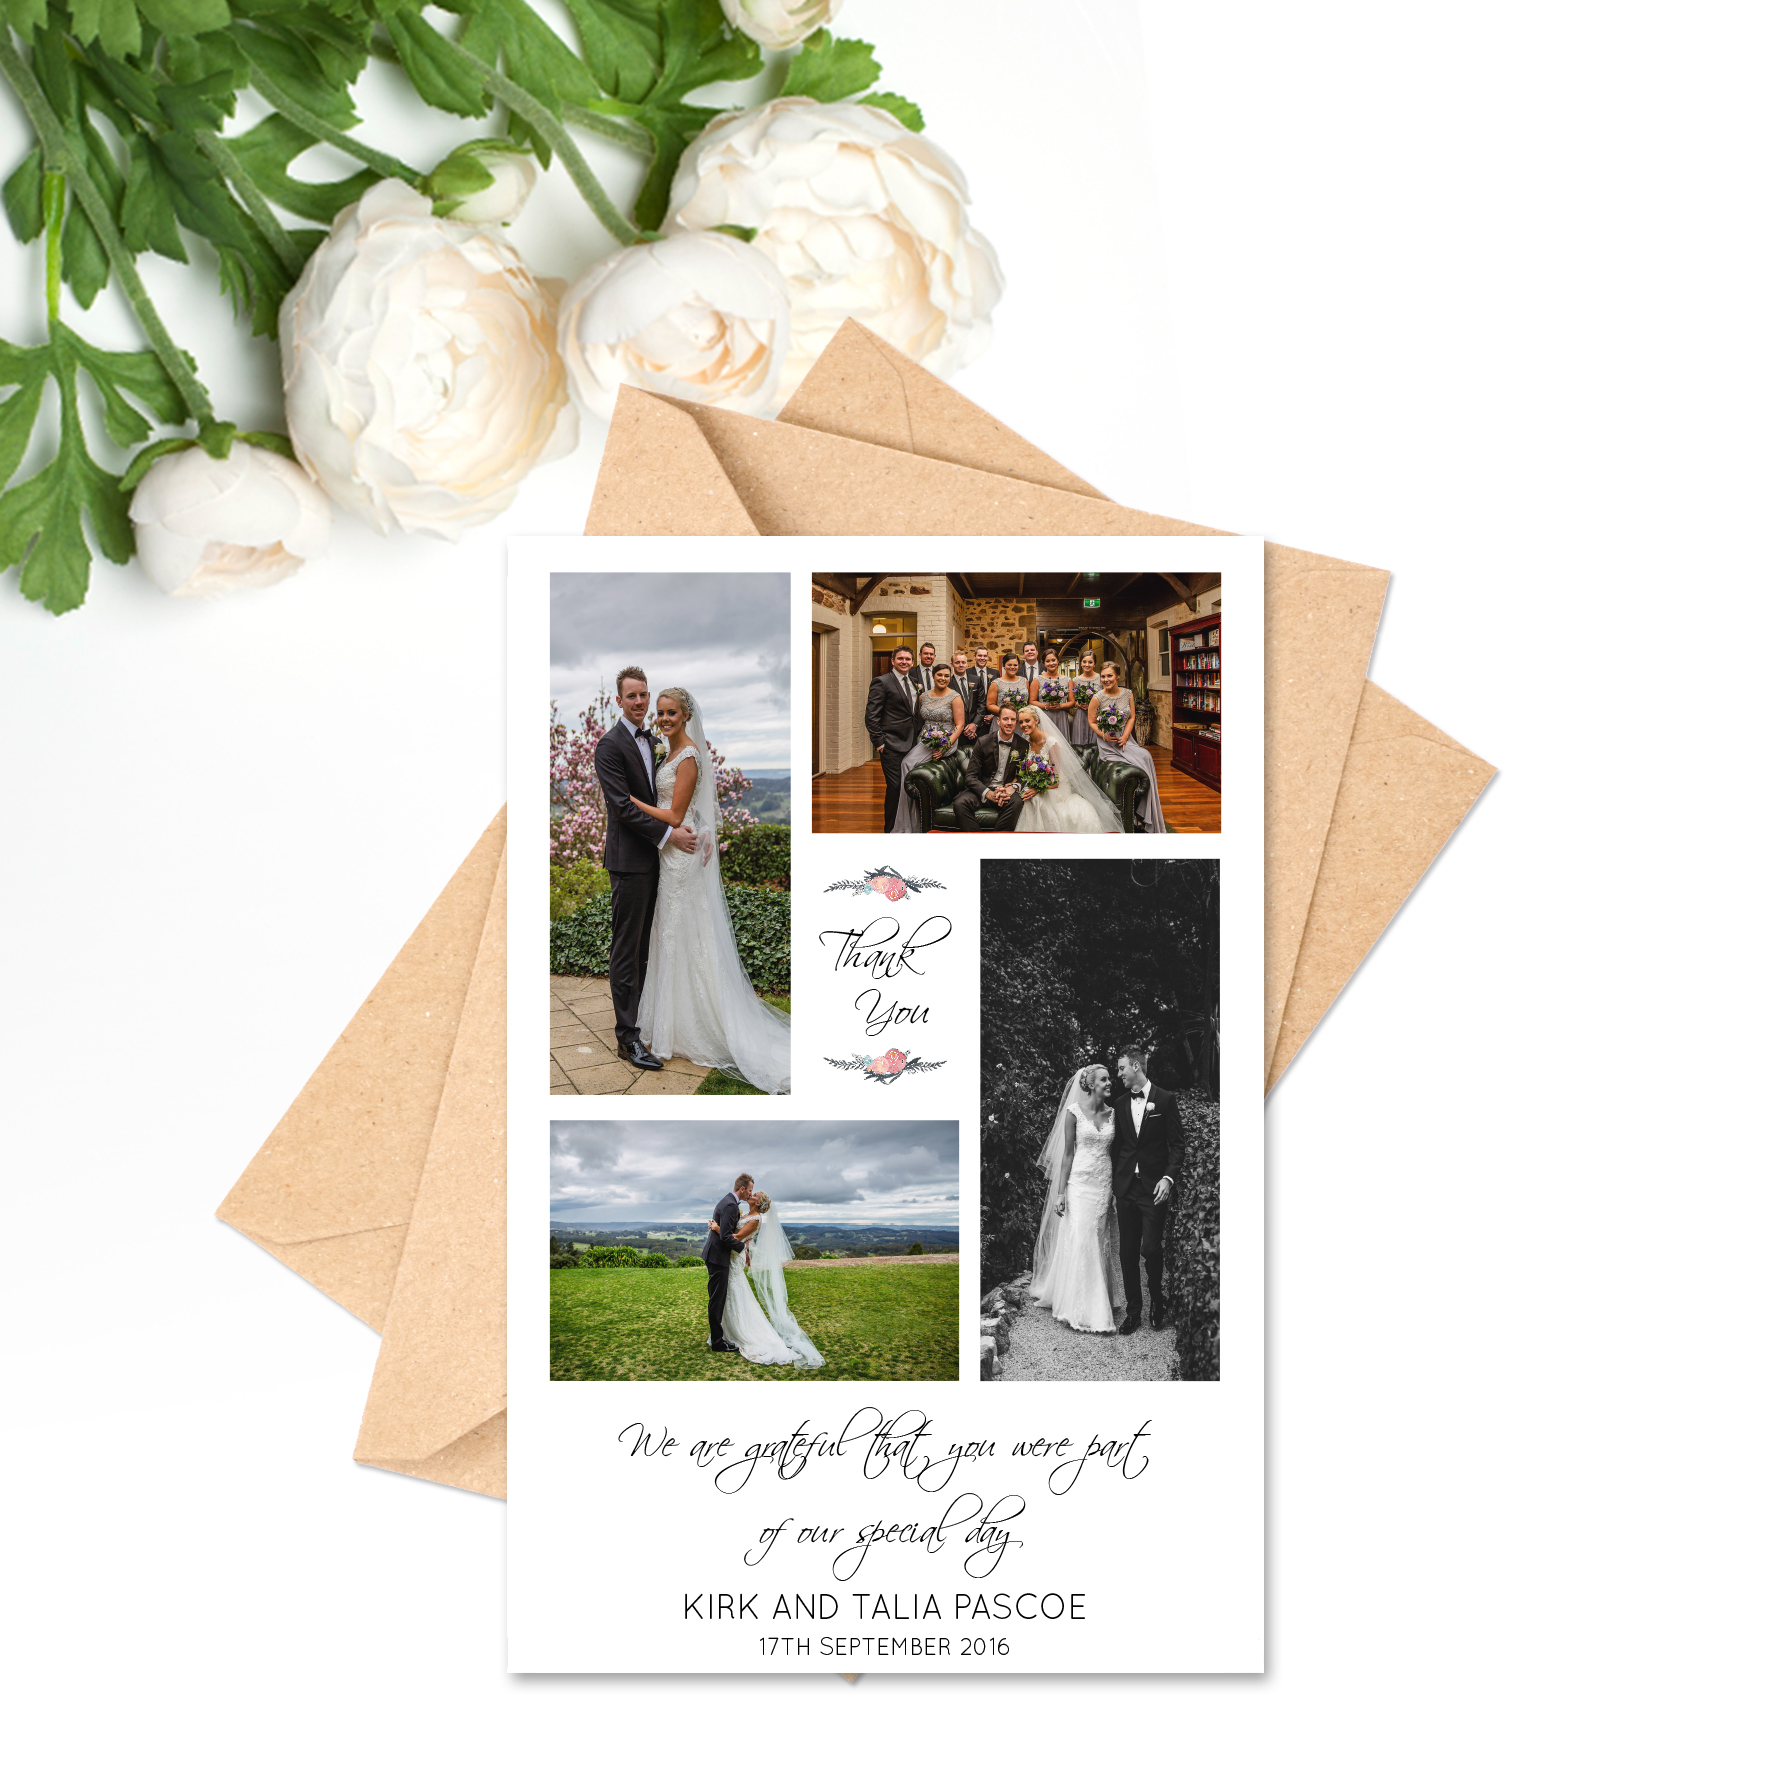 Mr + Mrs Pascoe Thank You Card